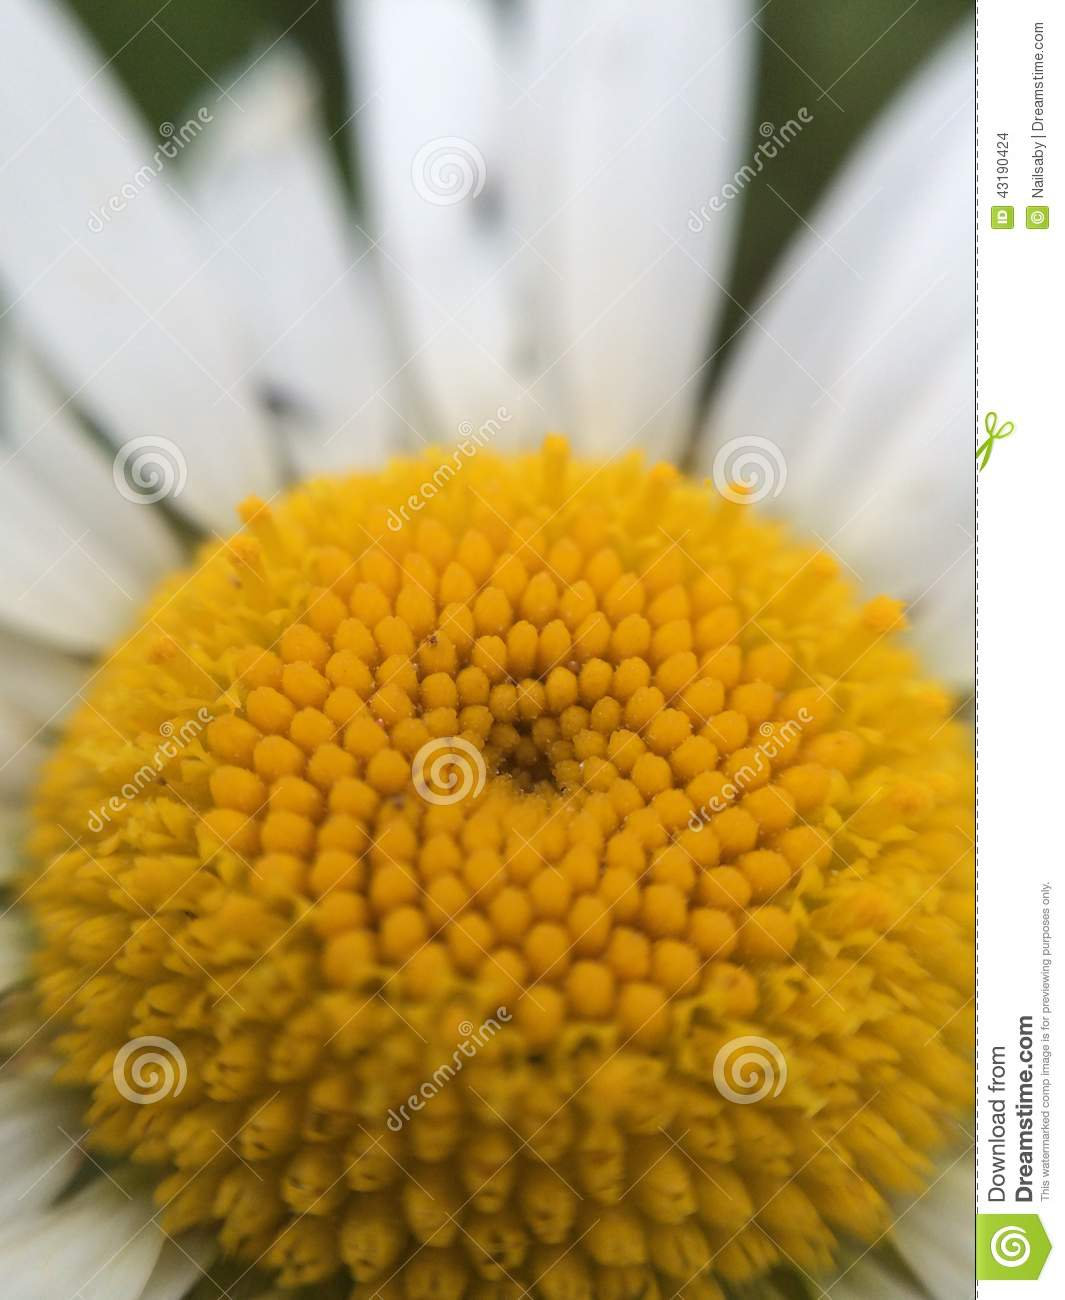 Daisy Flower Growing Up Among The Grass In The Meadow Stock Photo